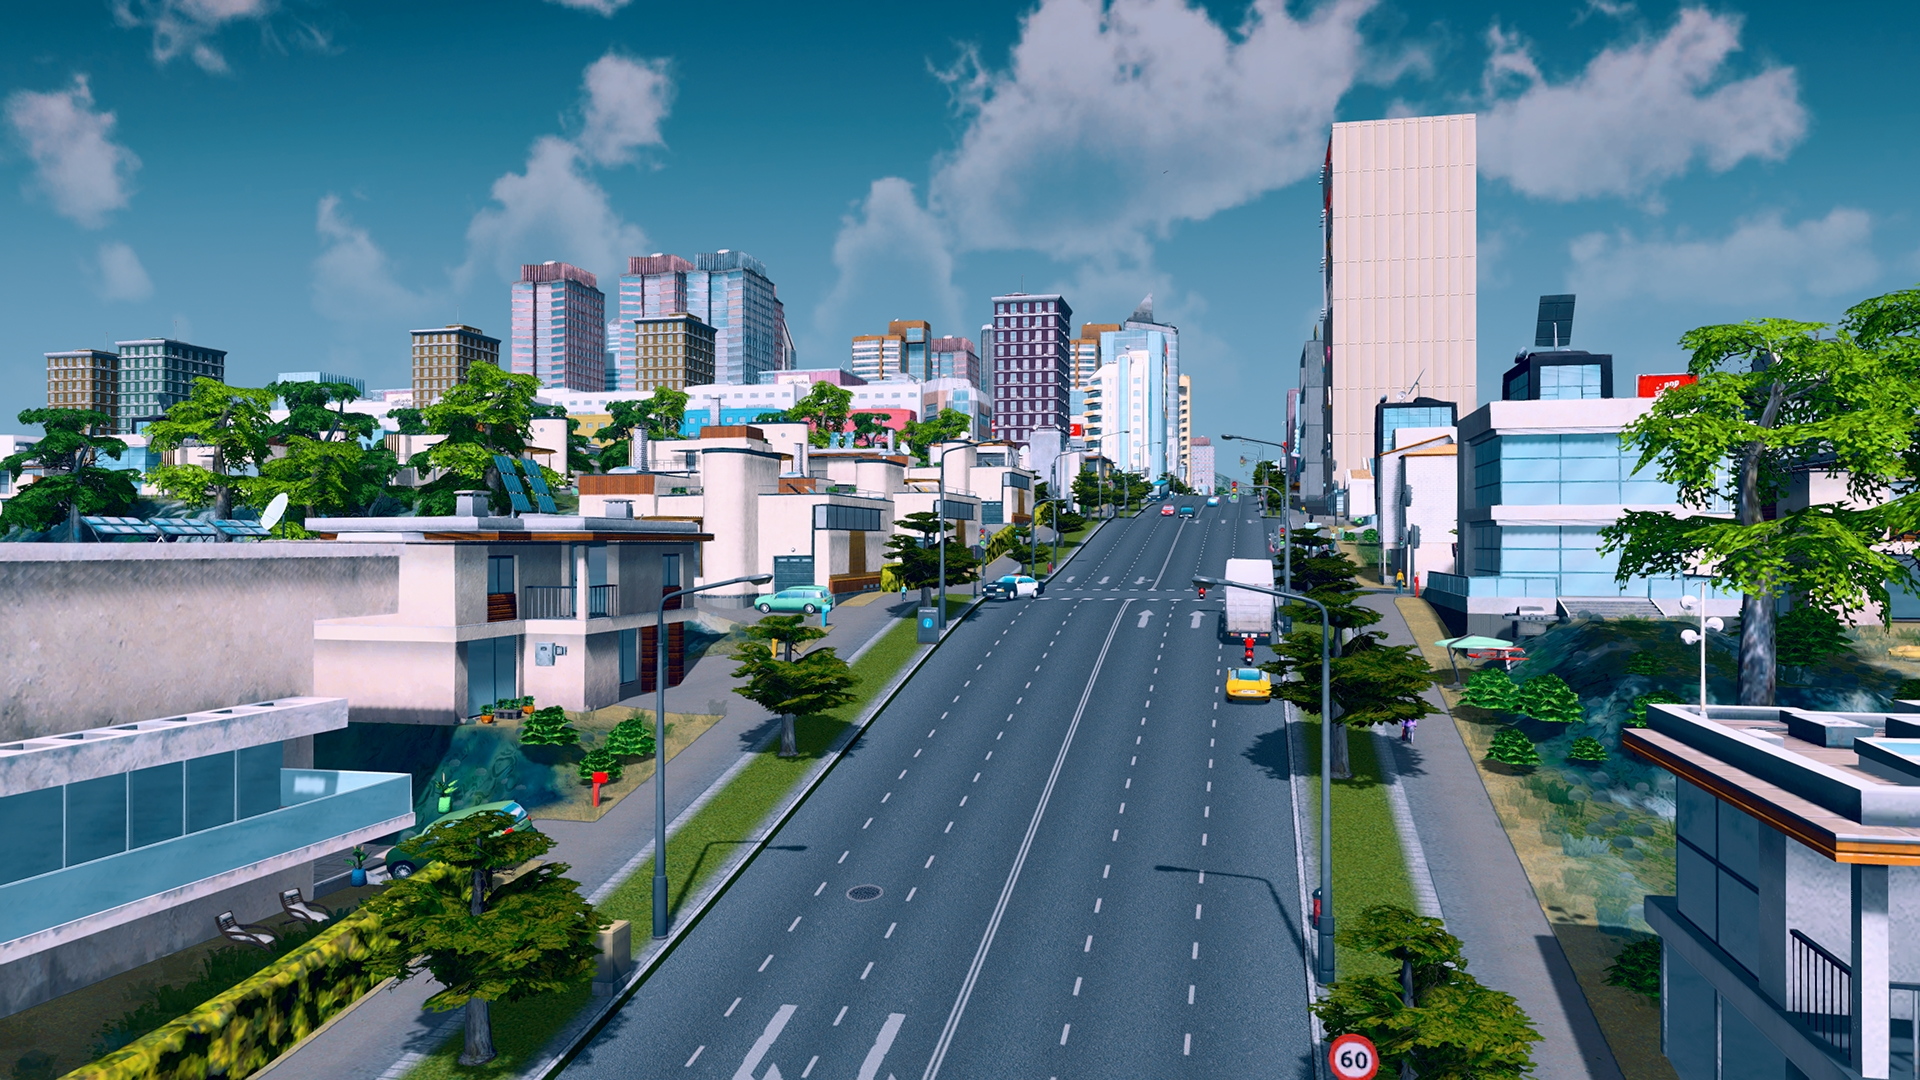 Cities: Skylines - Deluxe Upgrade Pack (NEW) | ROW (32292dee-0e3a-4535-8ca8-6a7890a9c01a)